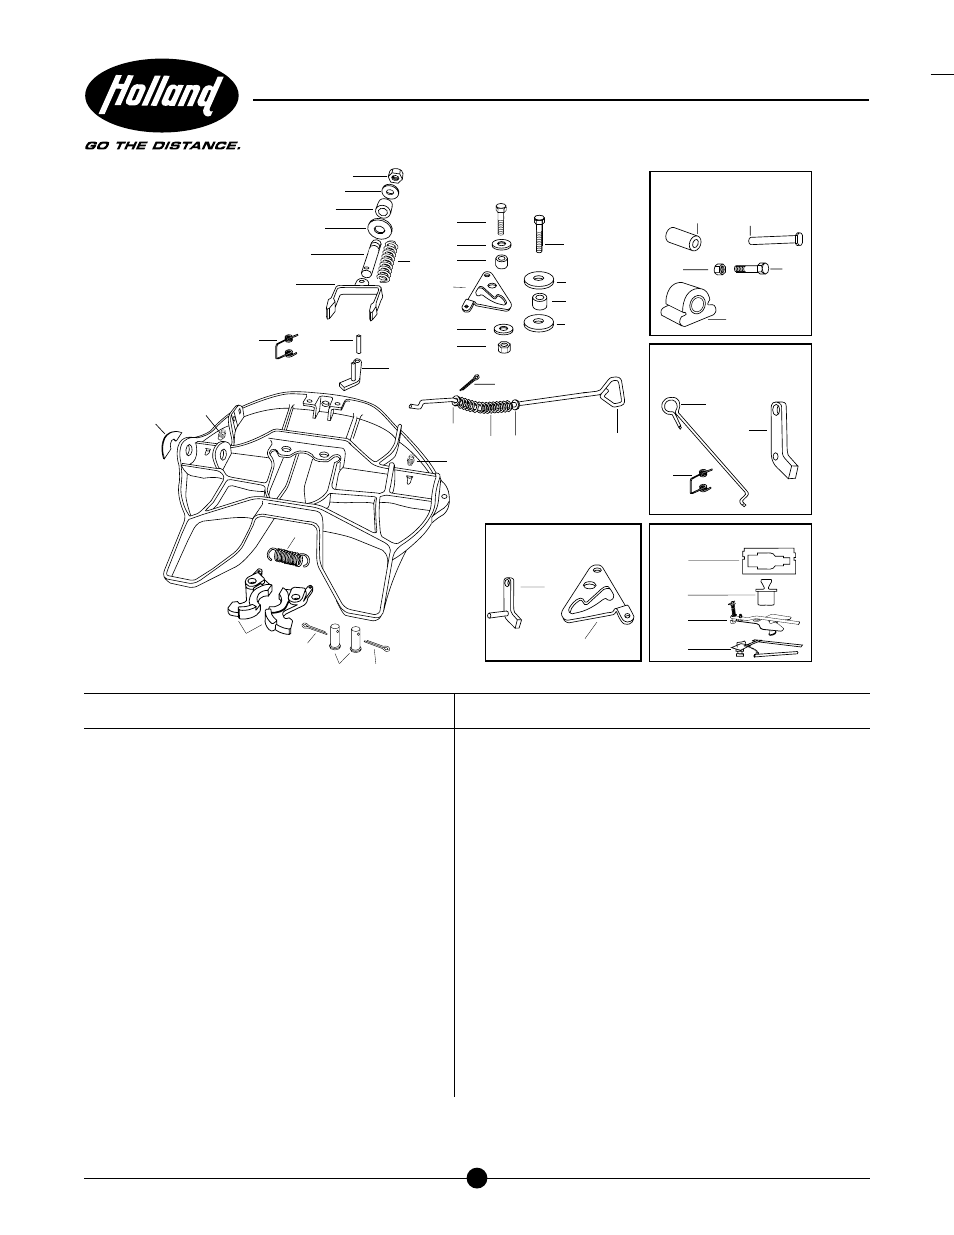 fontaine wiring diagram fuel pump wiring diagram for 1996 mustang